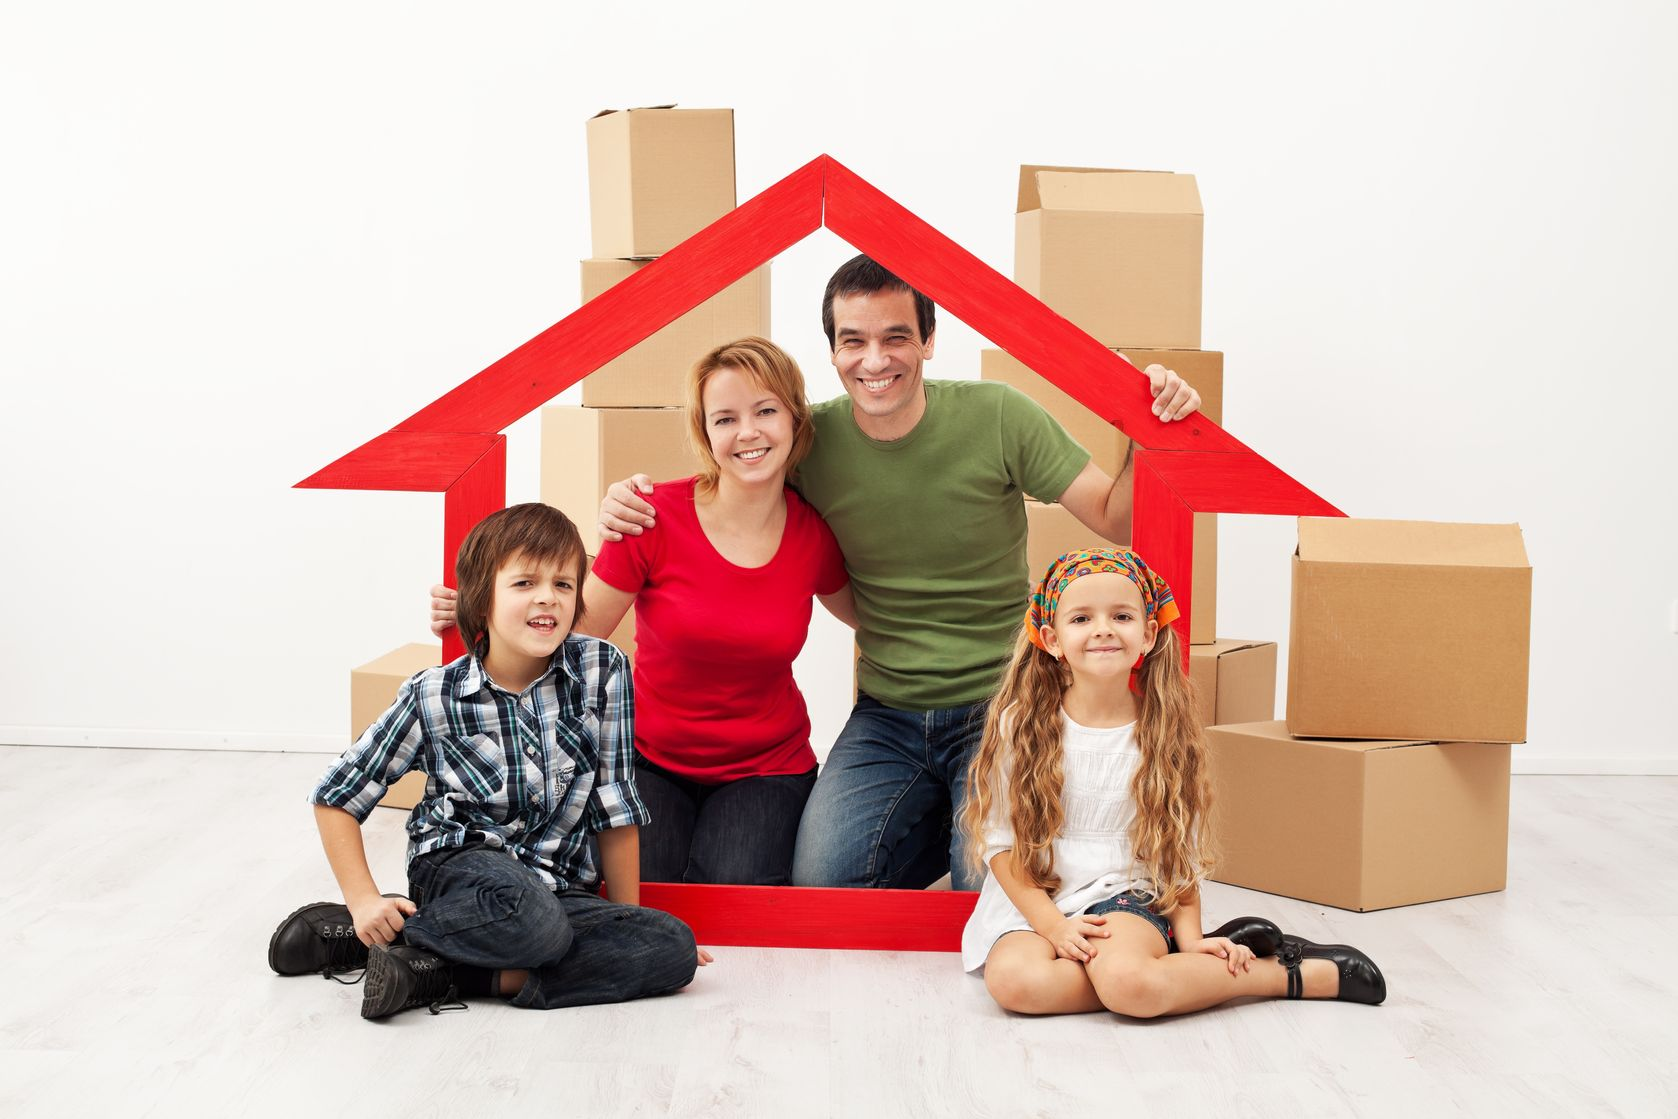 Boulder, Denver, CO. Homeowners Insurance